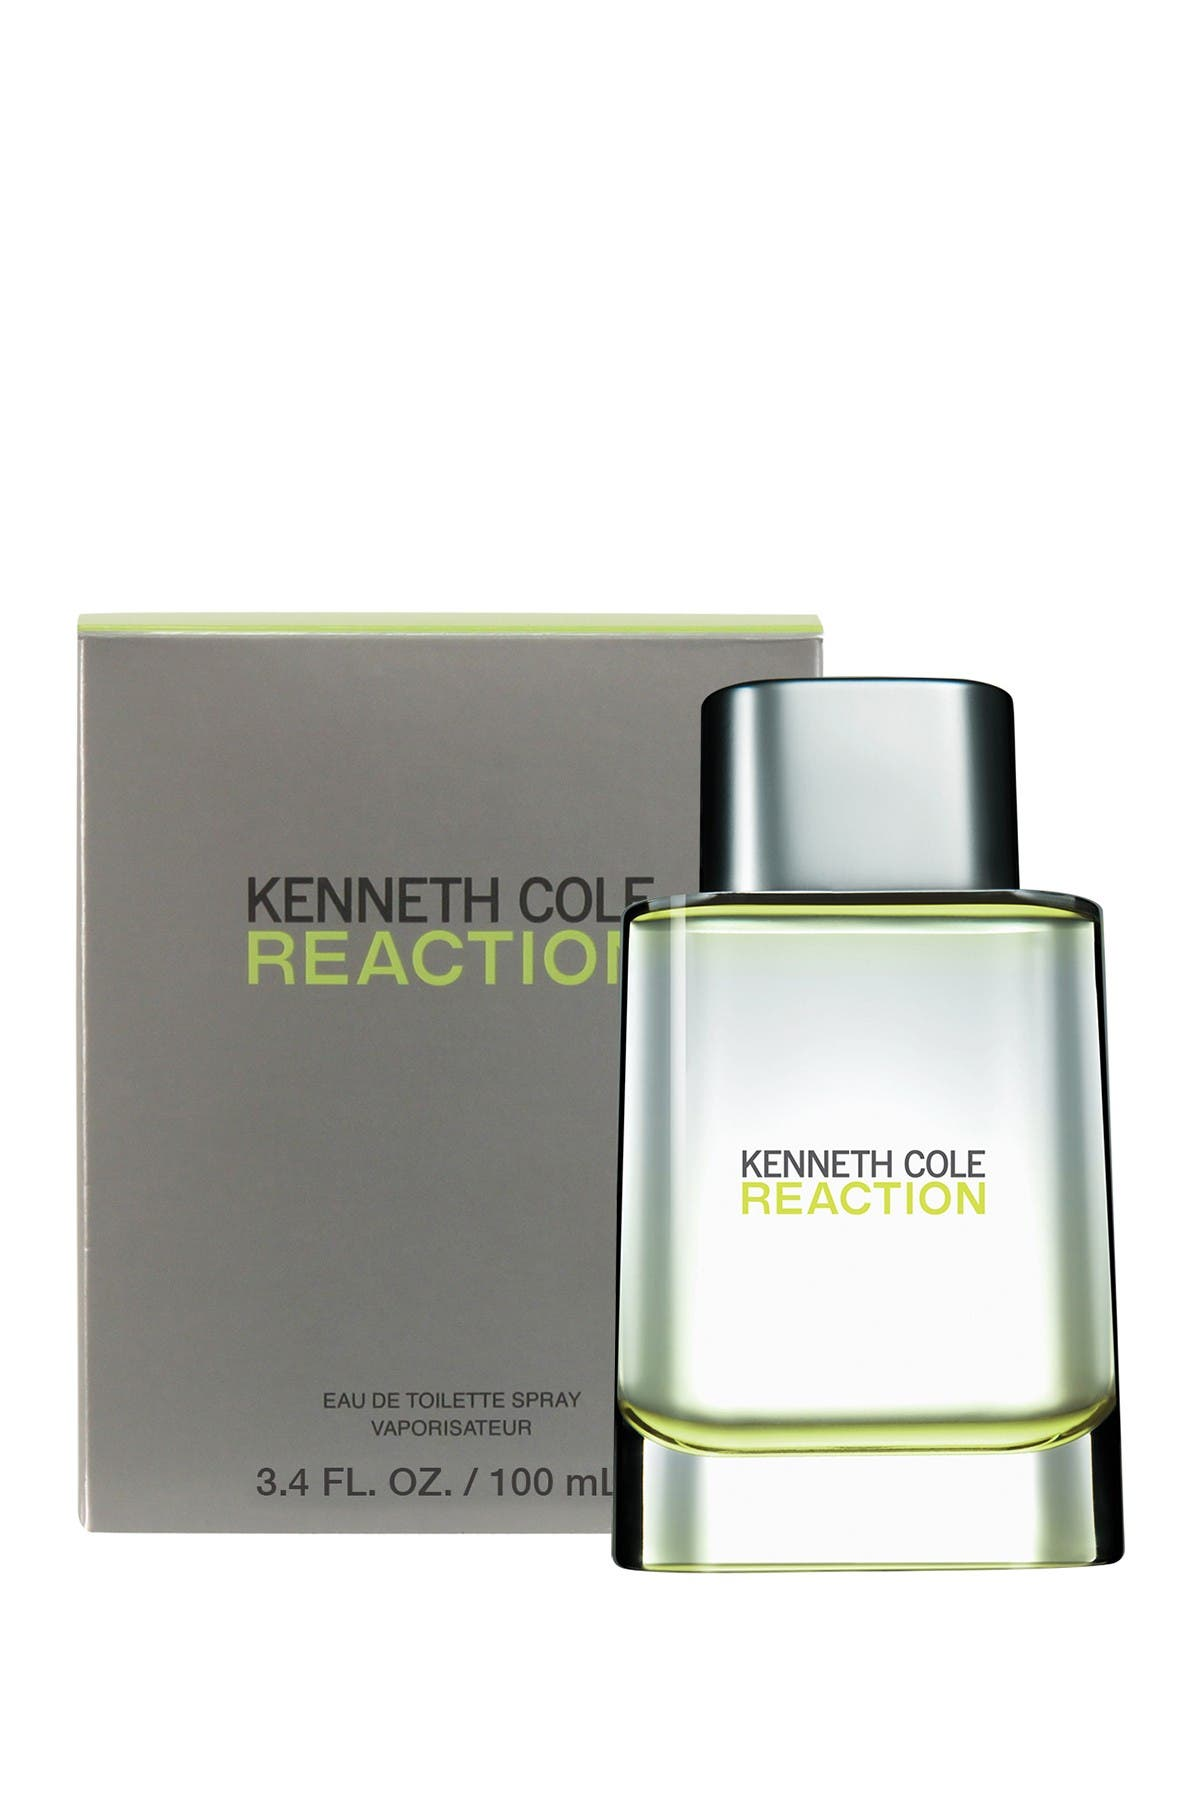 Image of Kenneth Cole Reaction Men's Kenneth Cole Reaction Eau de Toilette Spray - 3.4 fl. oz.